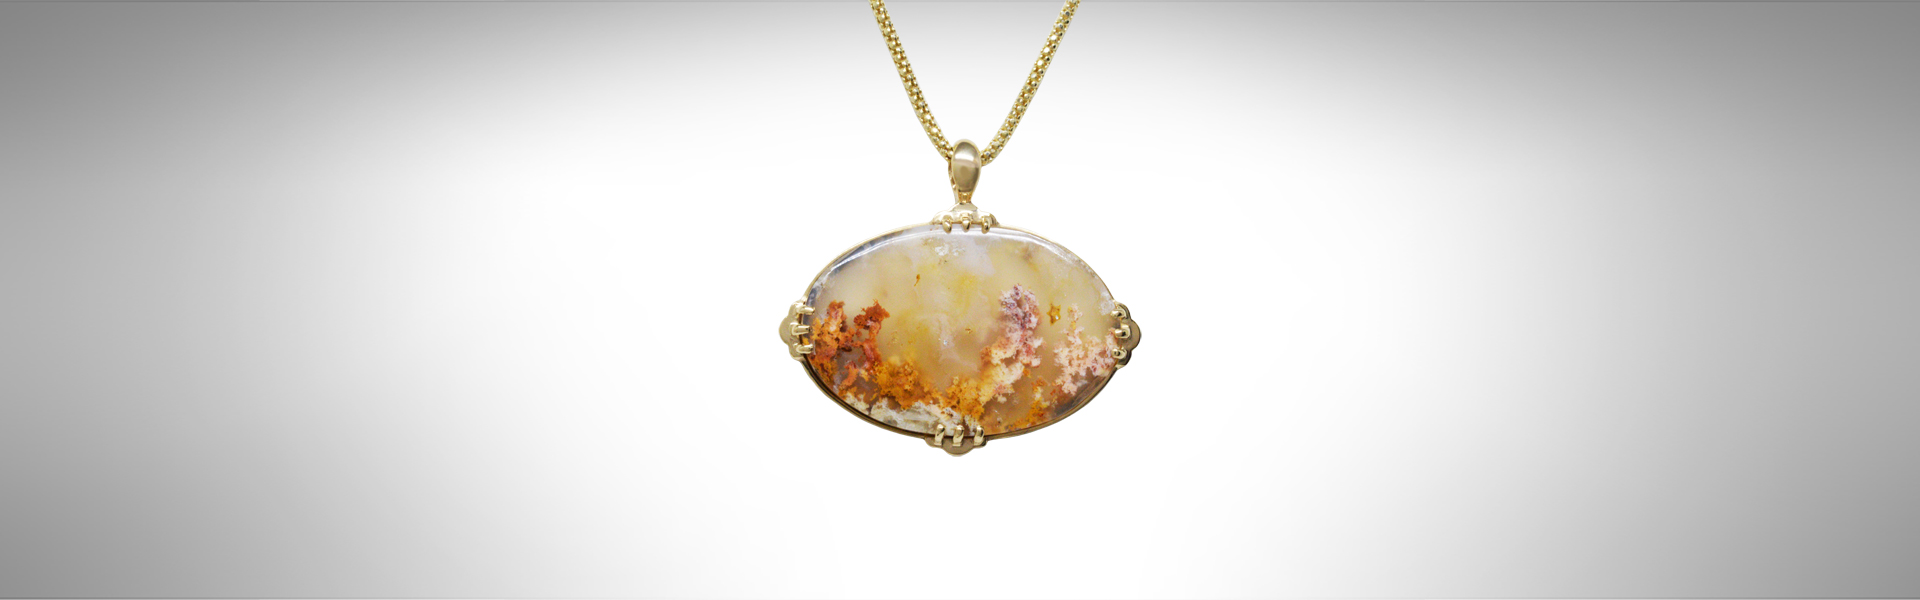 moss agate 14kt yellow gold pendant with chain, necklace with orange and pink colors.